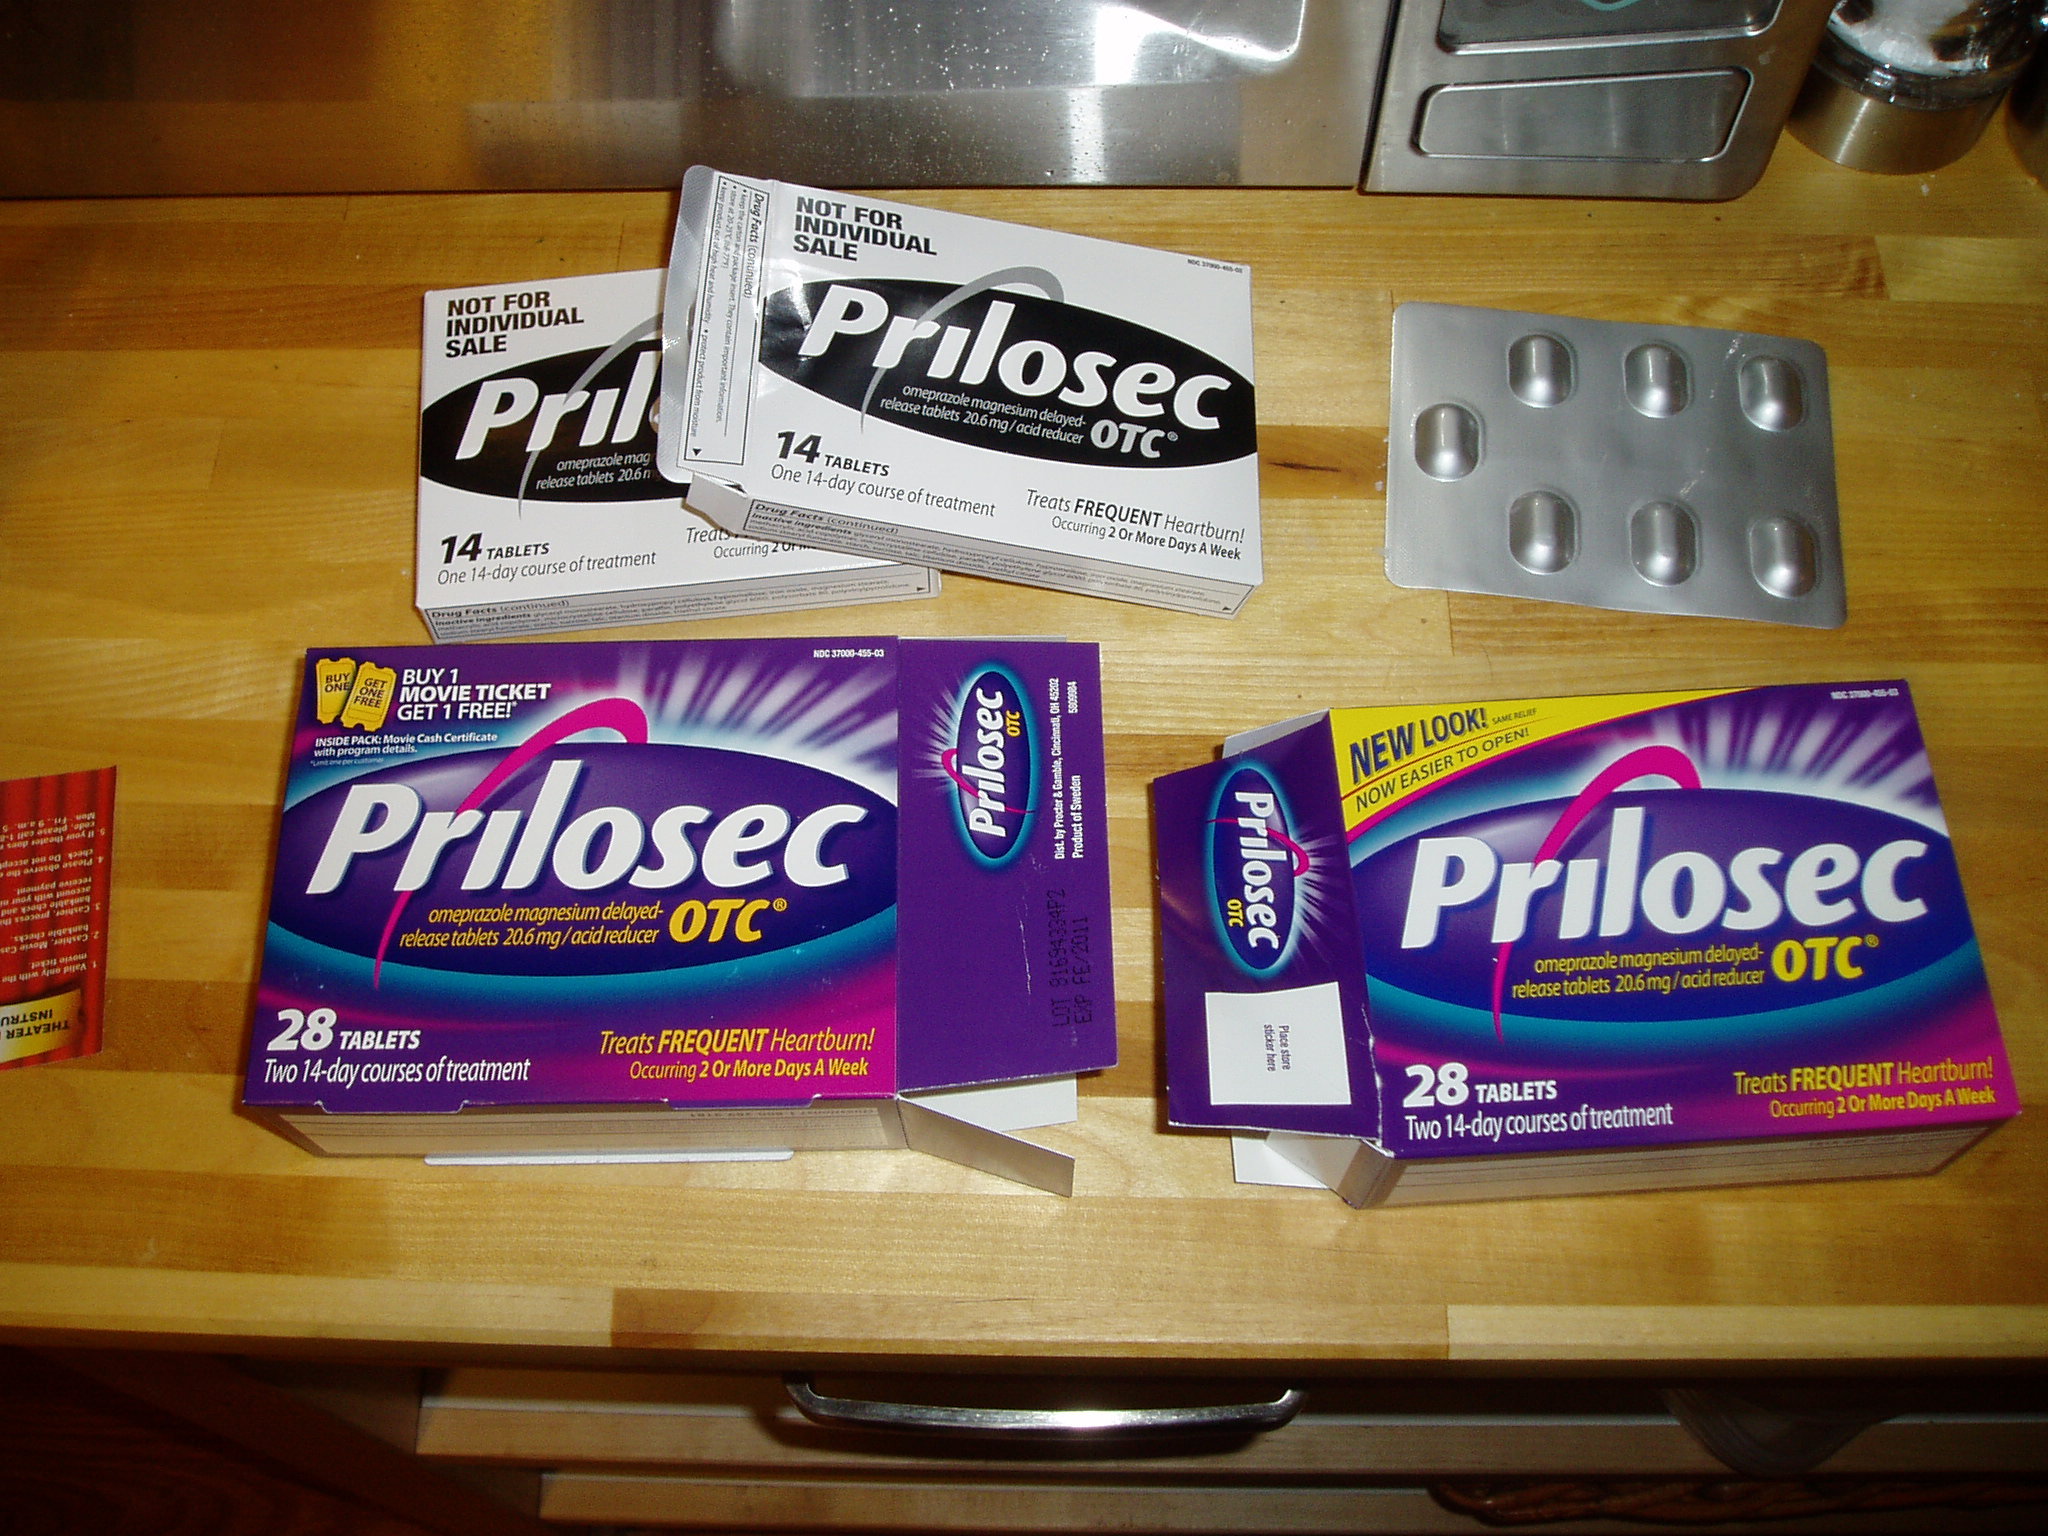 Dumb Prilosec Packaging